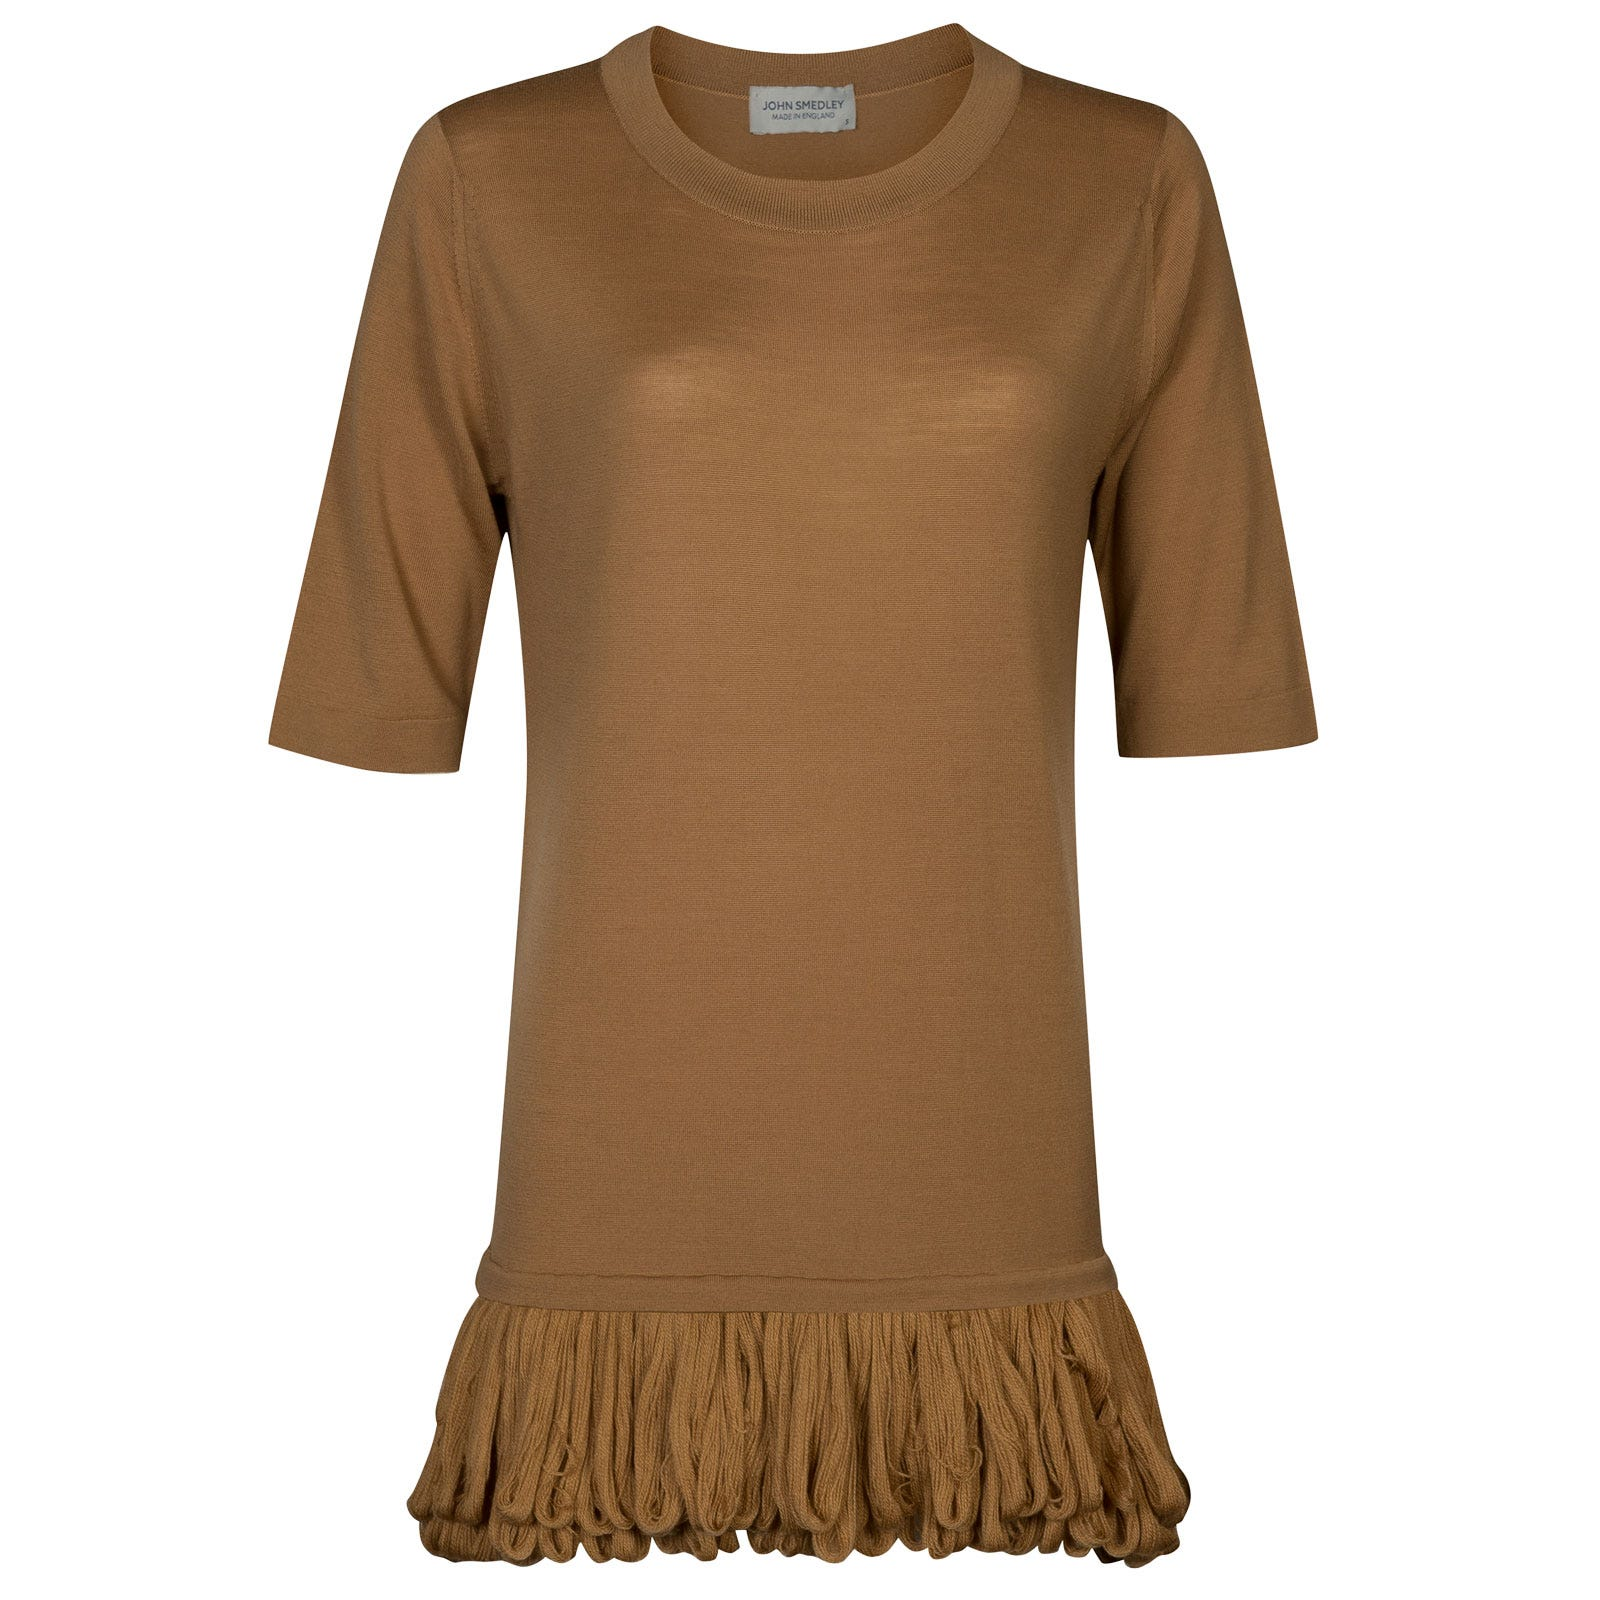 John Smedley briar Merino Wool Sweater in Camel-XL